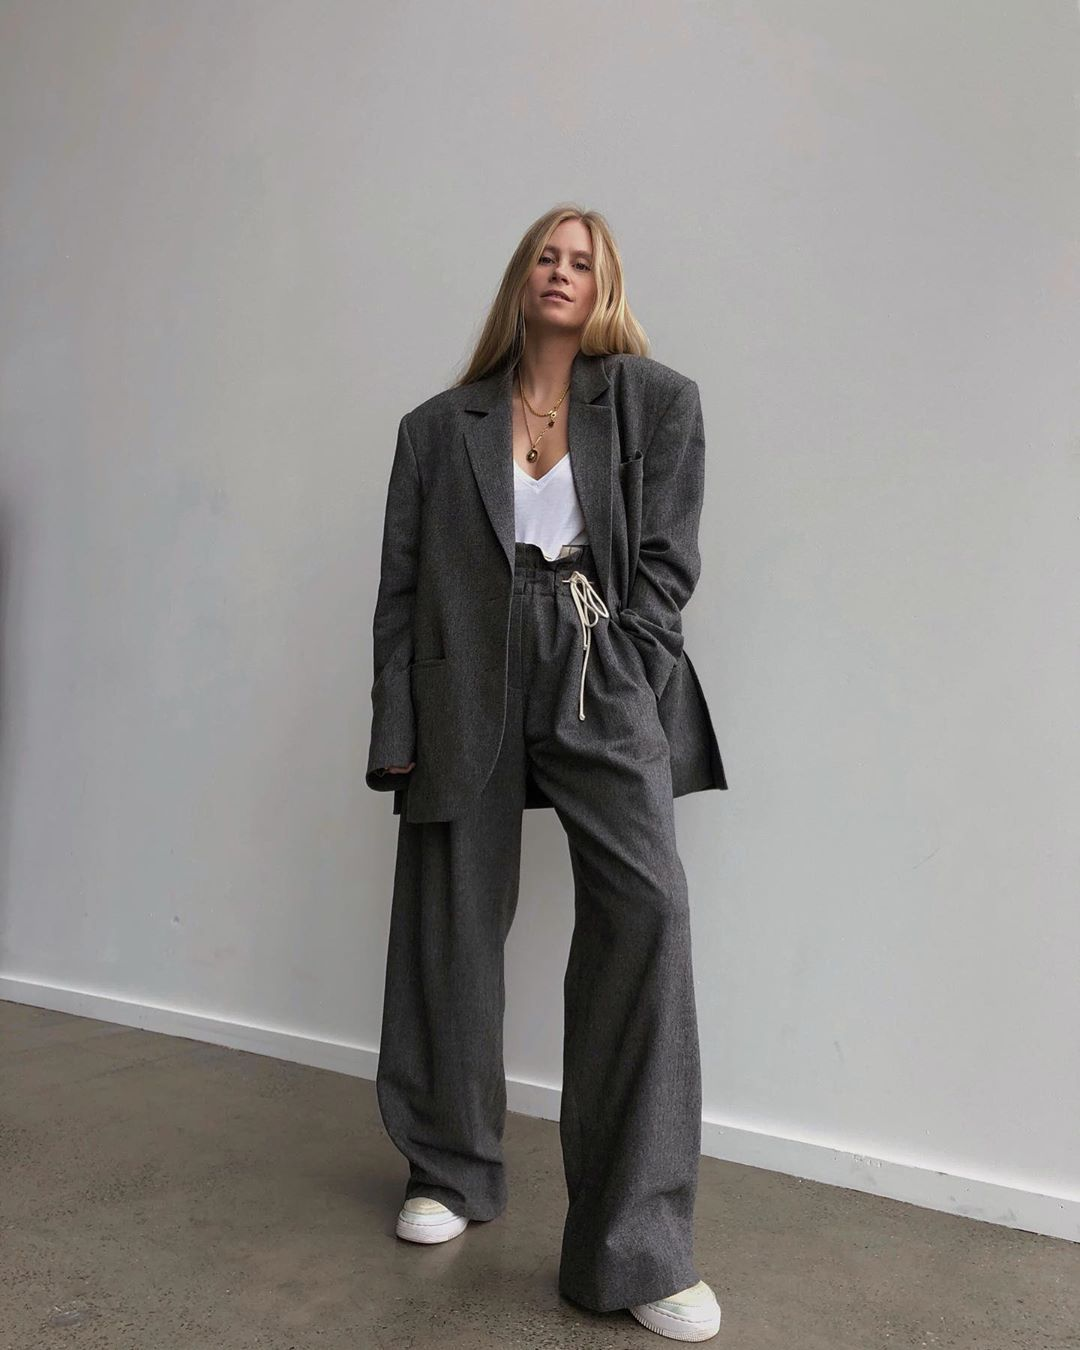 tine-andrea-grey-oversized-suit-fall-instagram